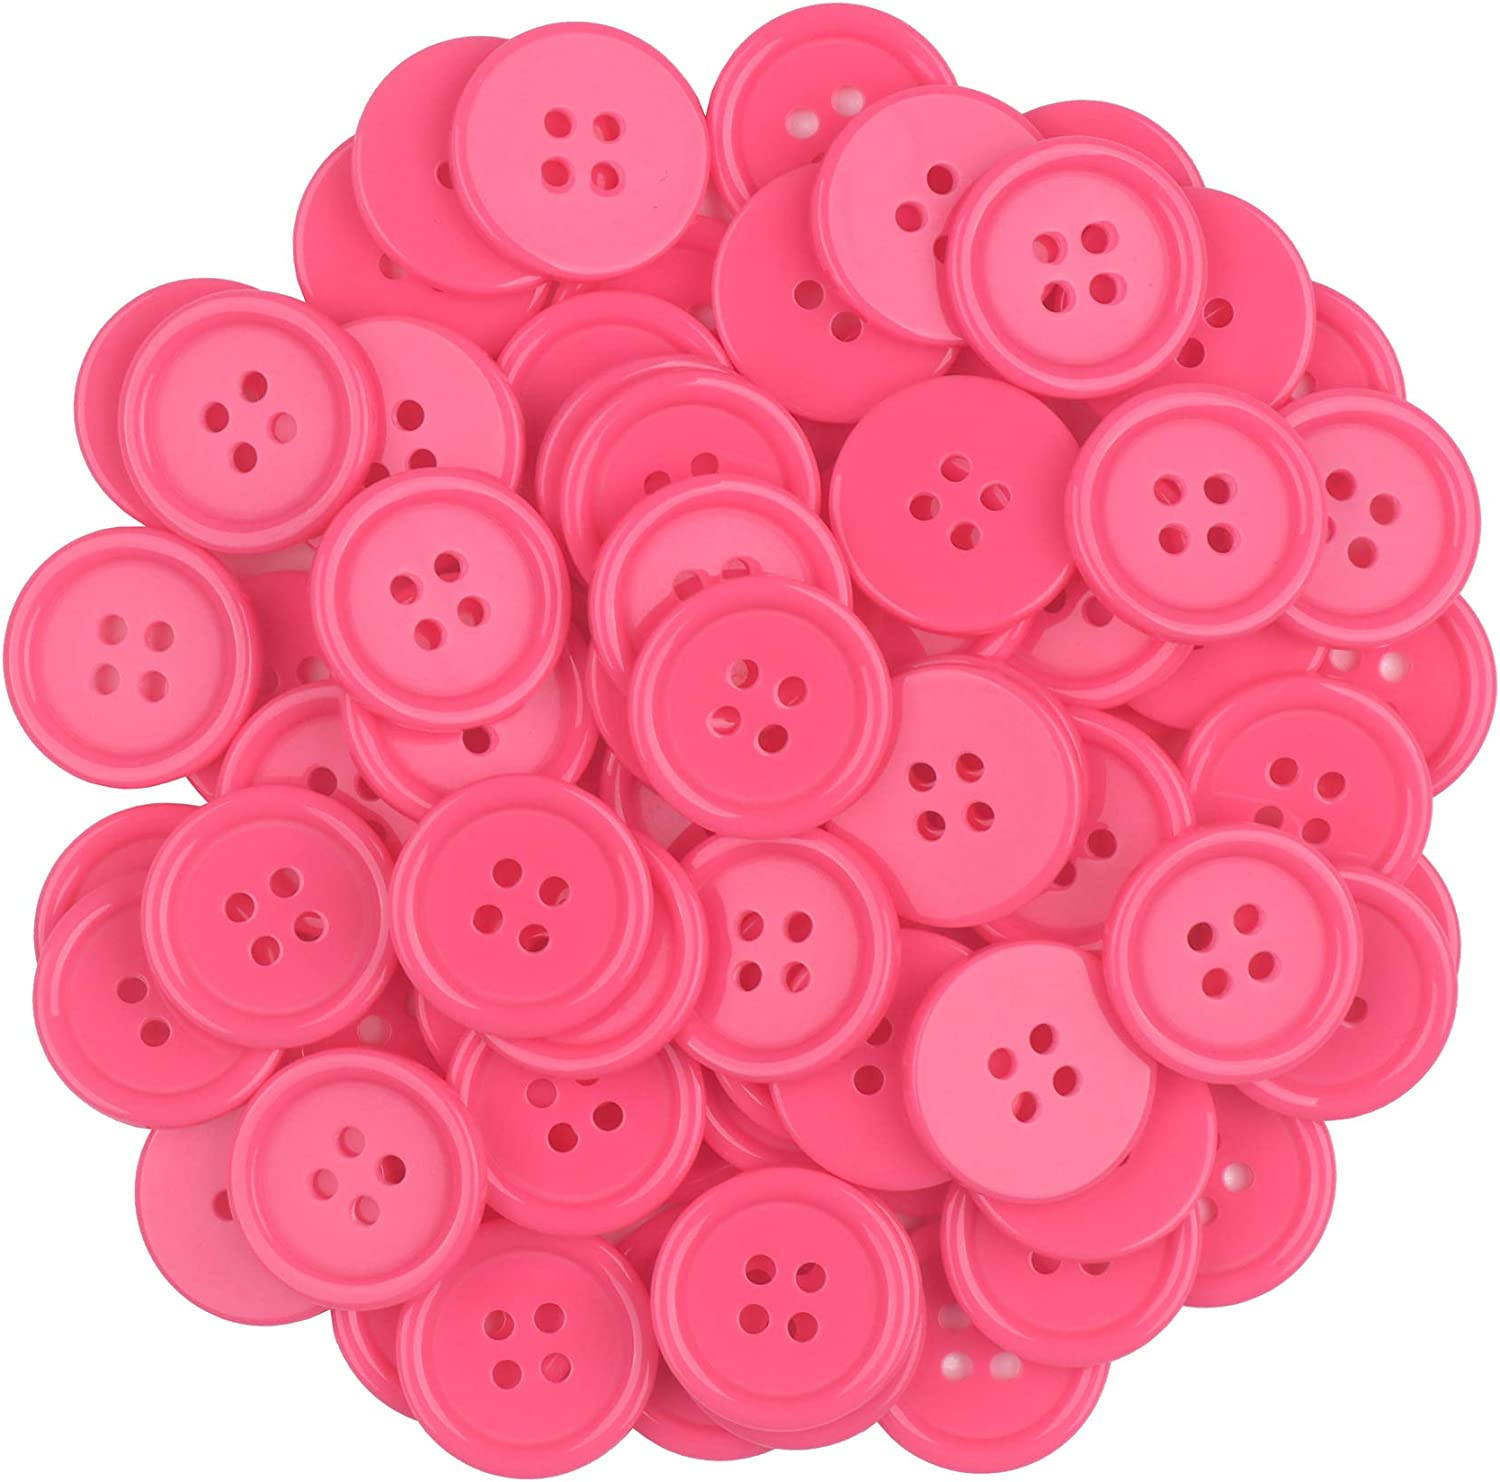 Sewing Resin Buttons Round Shape 4 Holes Craft Buttons for Sewing Scrapbooking and DIY Craft Multicolored 20mm YAKA100Pcs 4//5inch